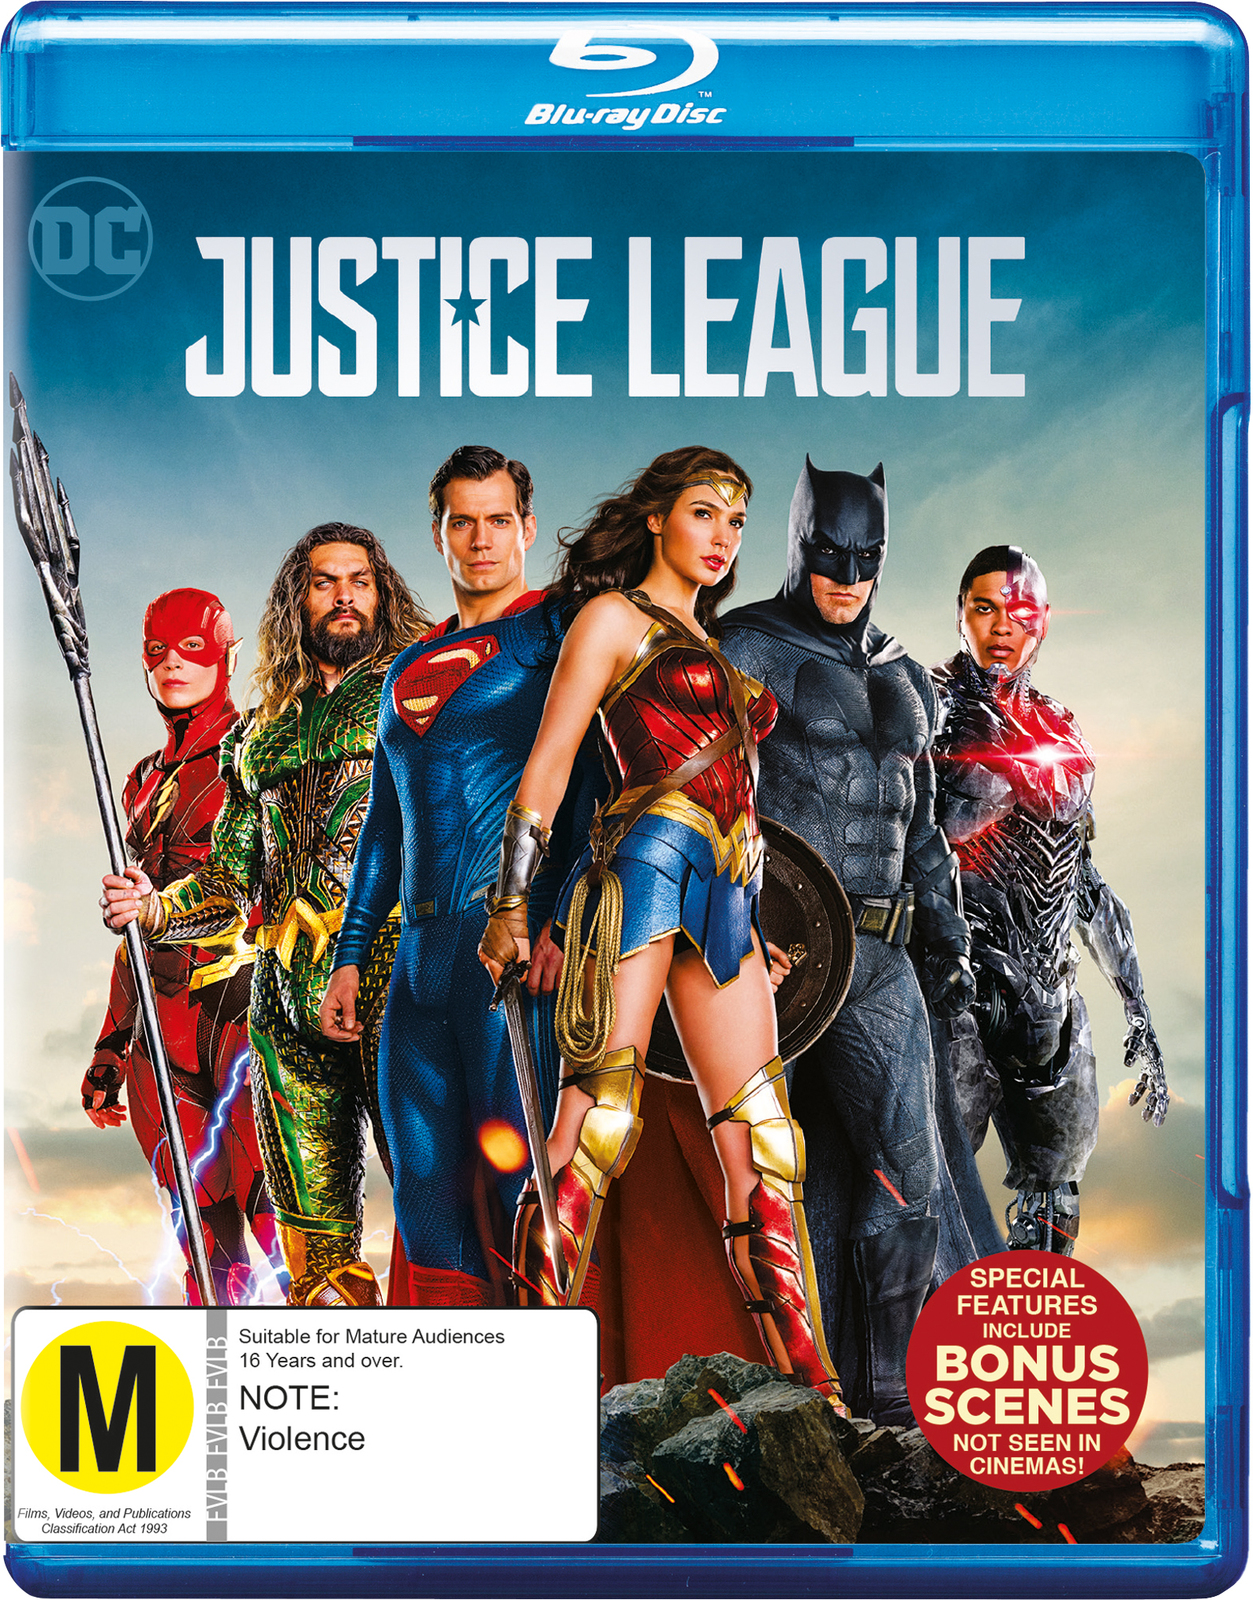 Justice League on Blu-ray image